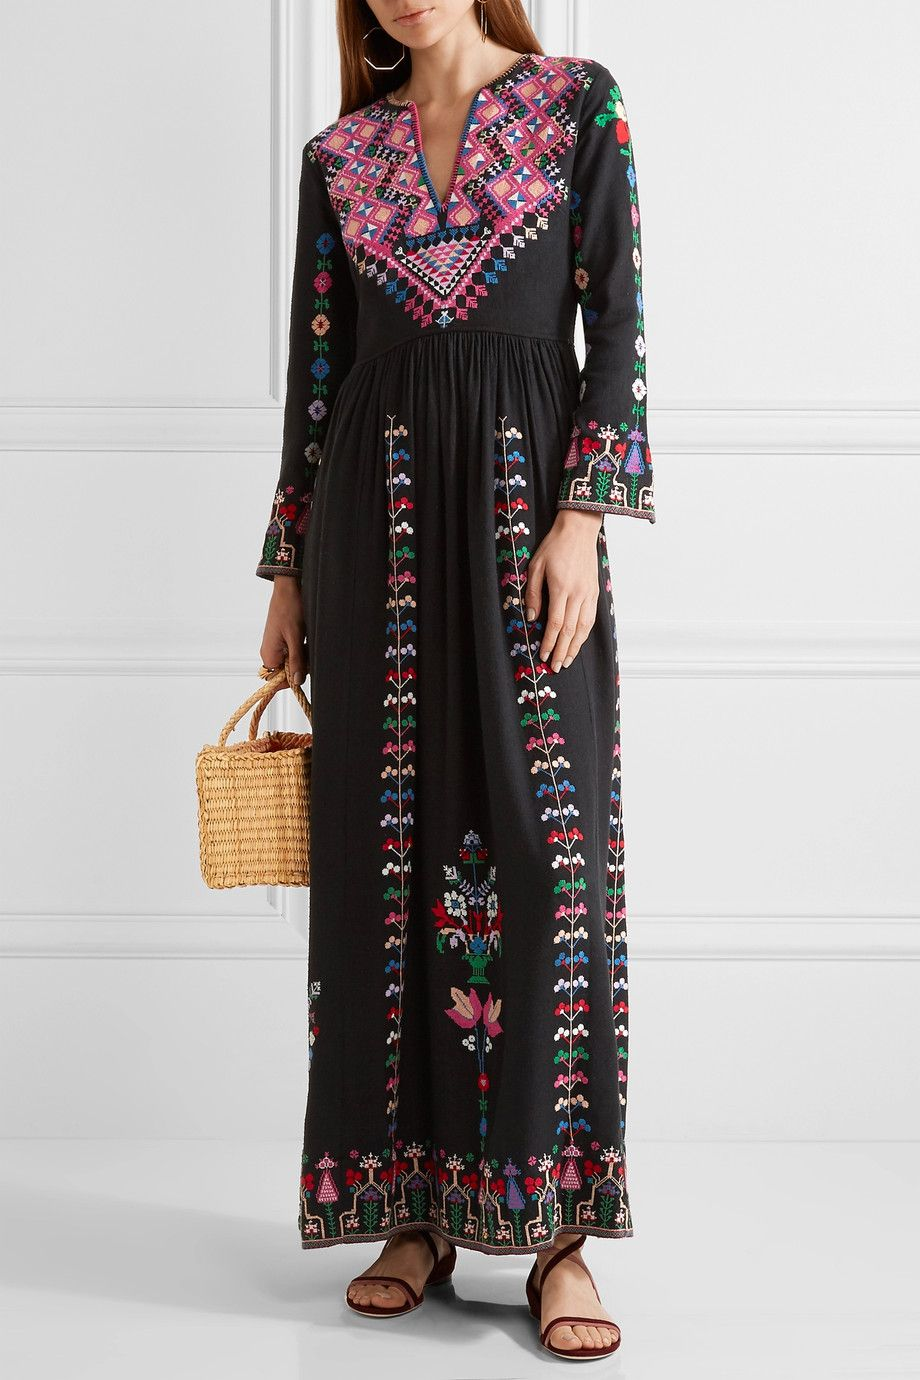 Big Discount Online Outlet Finishline Irina Embroidered Silk-canvas Maxi Dress - Black Ulla Johnson Pay With Paypal Cheap Online KdGINUo1